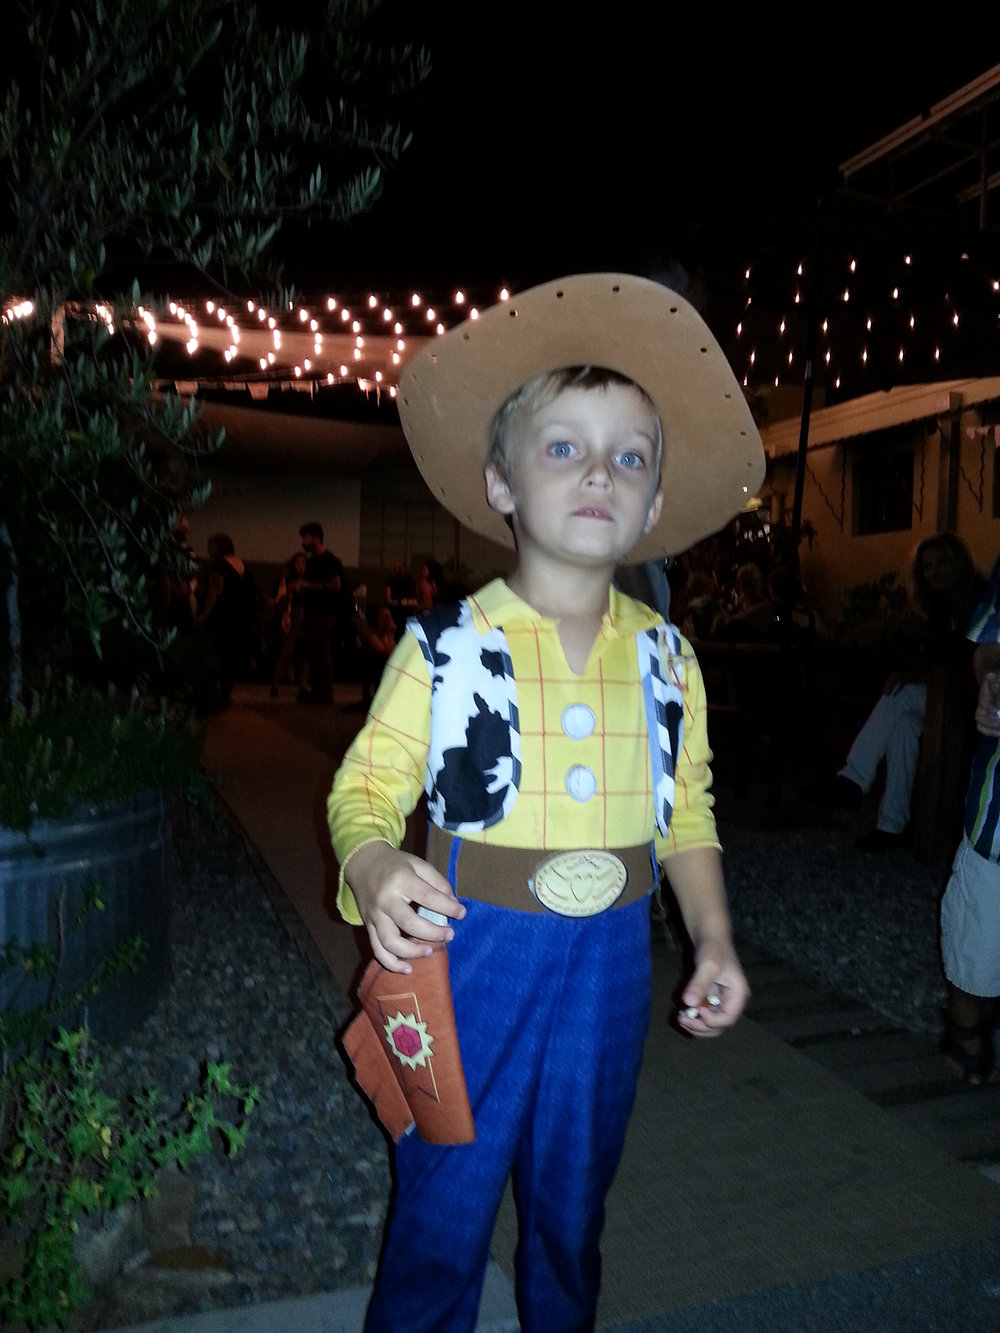 The Littlest Cowboy